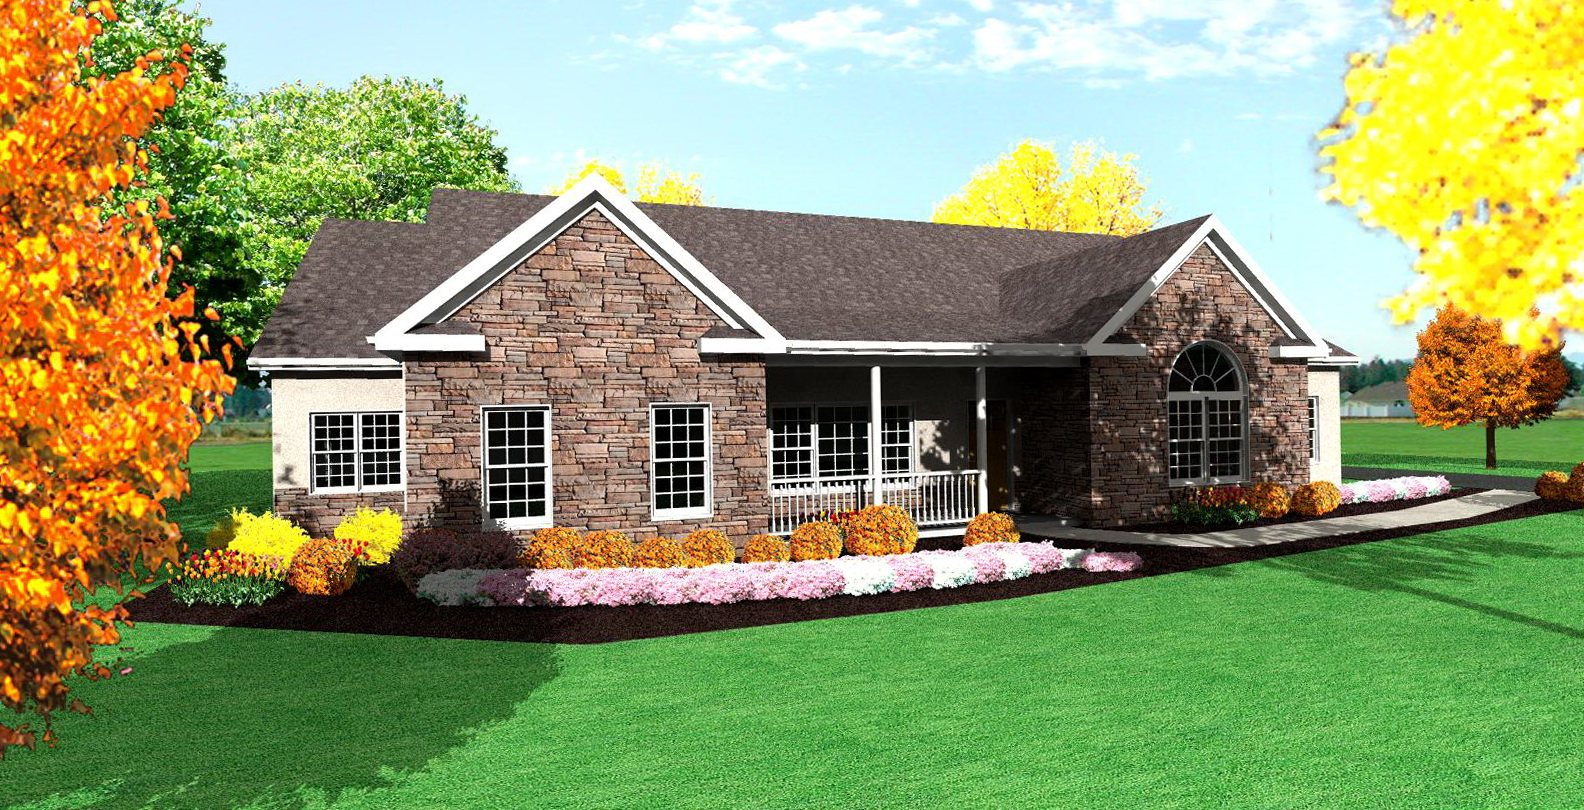 Ranch style house plans with front porch home design ideas for Ranch style front porch